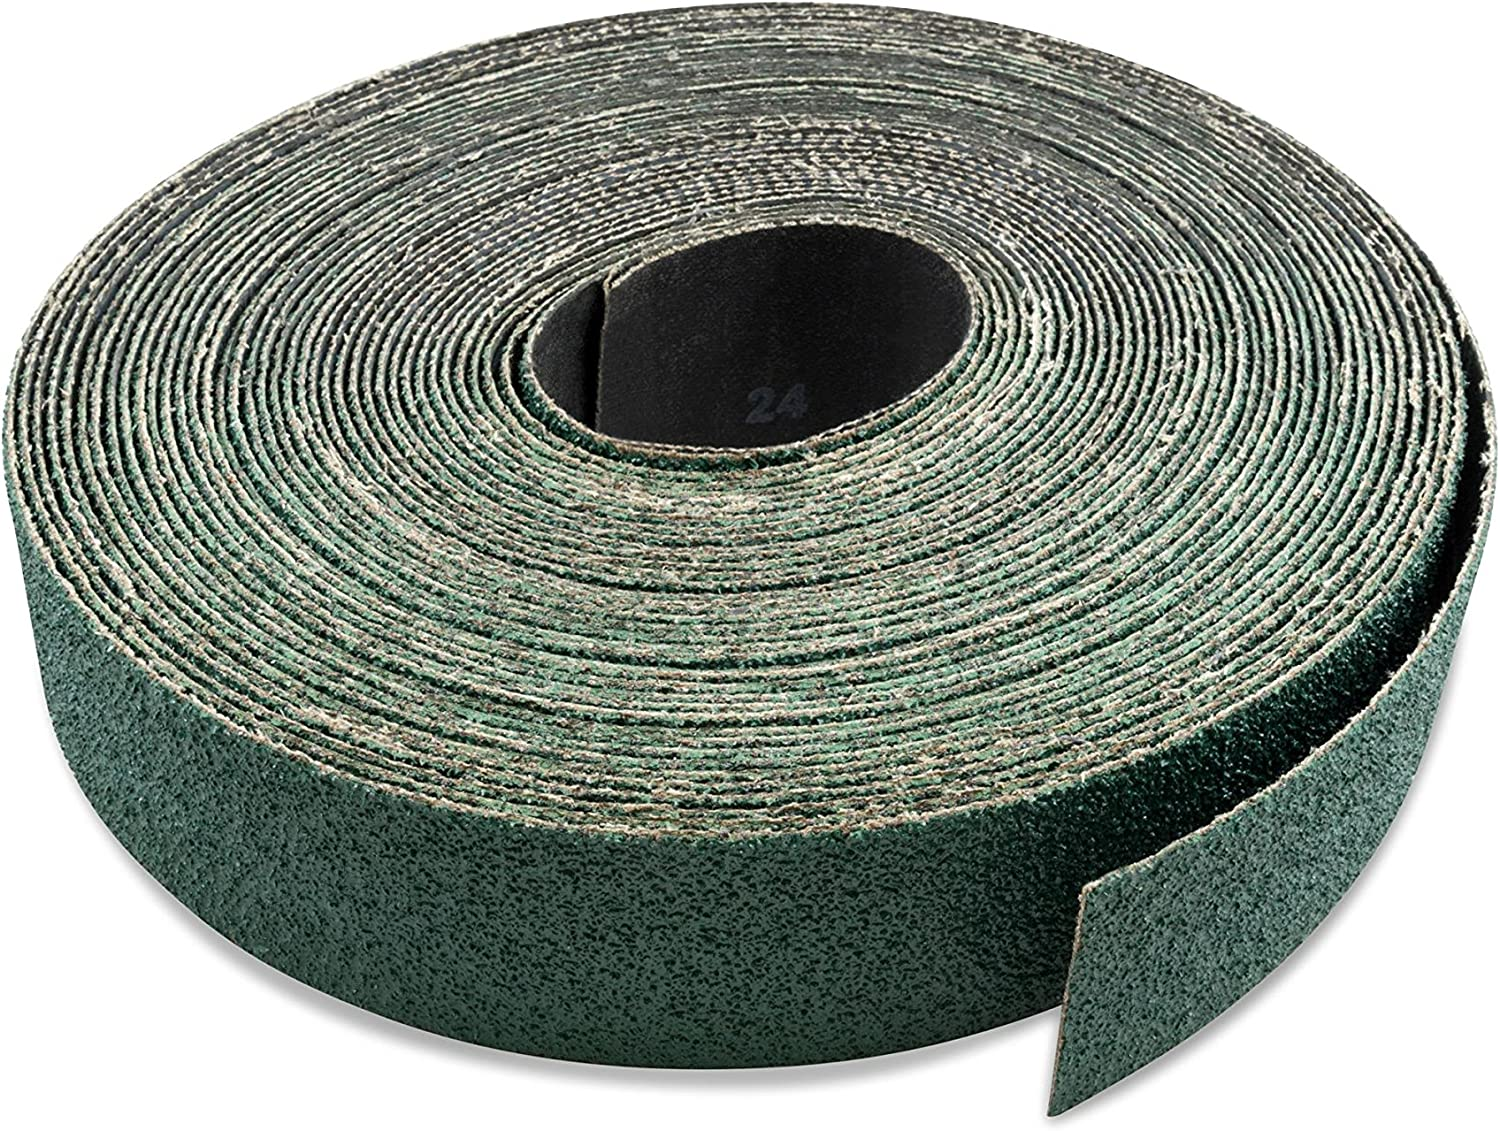 Cut to Length Red Label Abrasives 3 Inch X 70 FT 100 Grit Woodworking Drum Sander Strip Roll